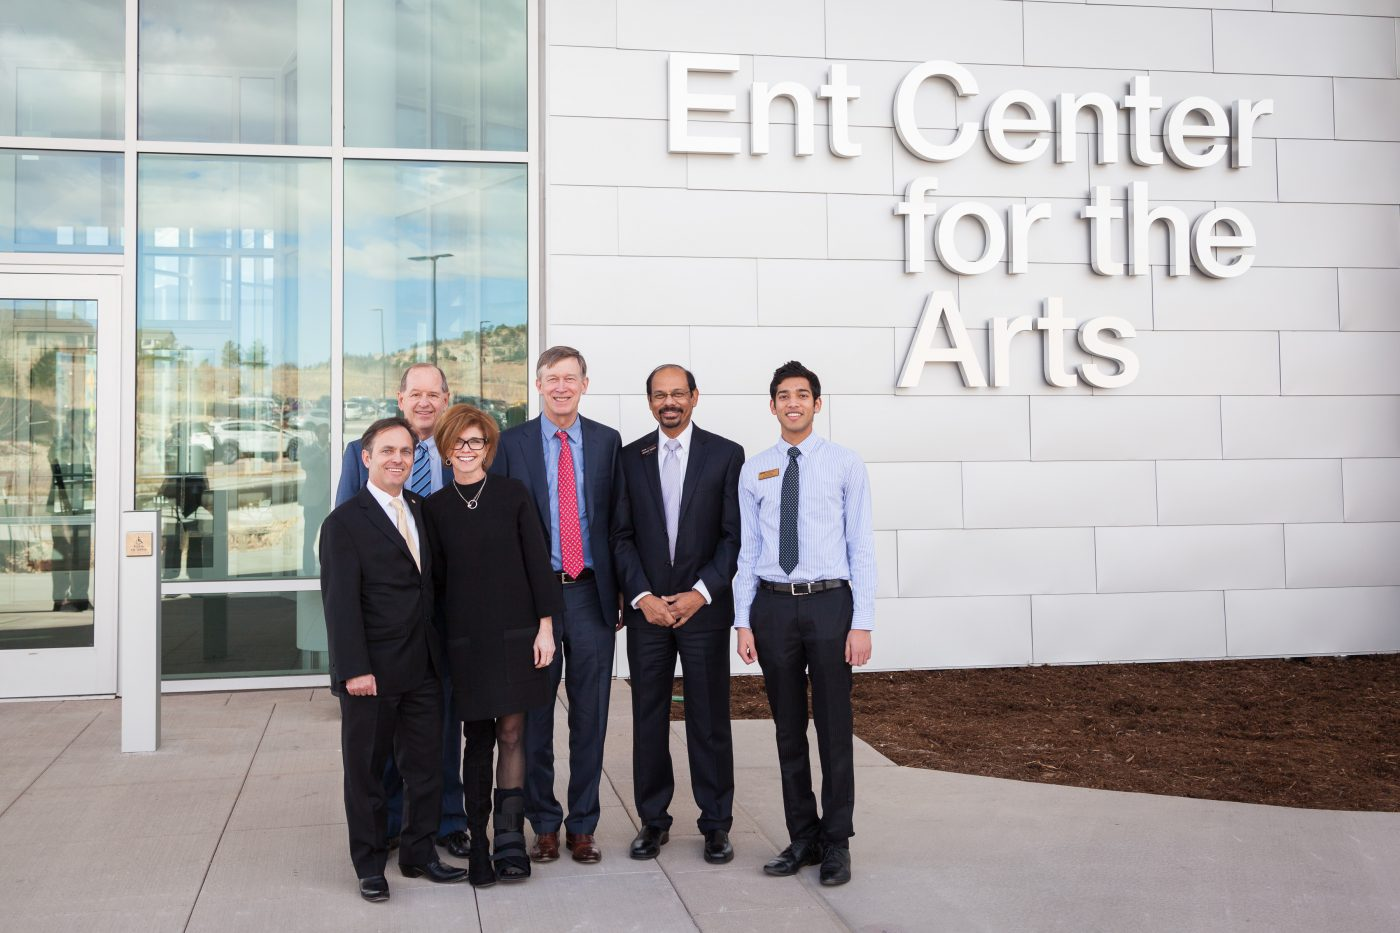 Sally and Kyle Hybl, Martin Wood, Governor Hickenlooper, Chancellor Reddy, and Student Body President Joey Vijayam at the Ent Center for the Arts.